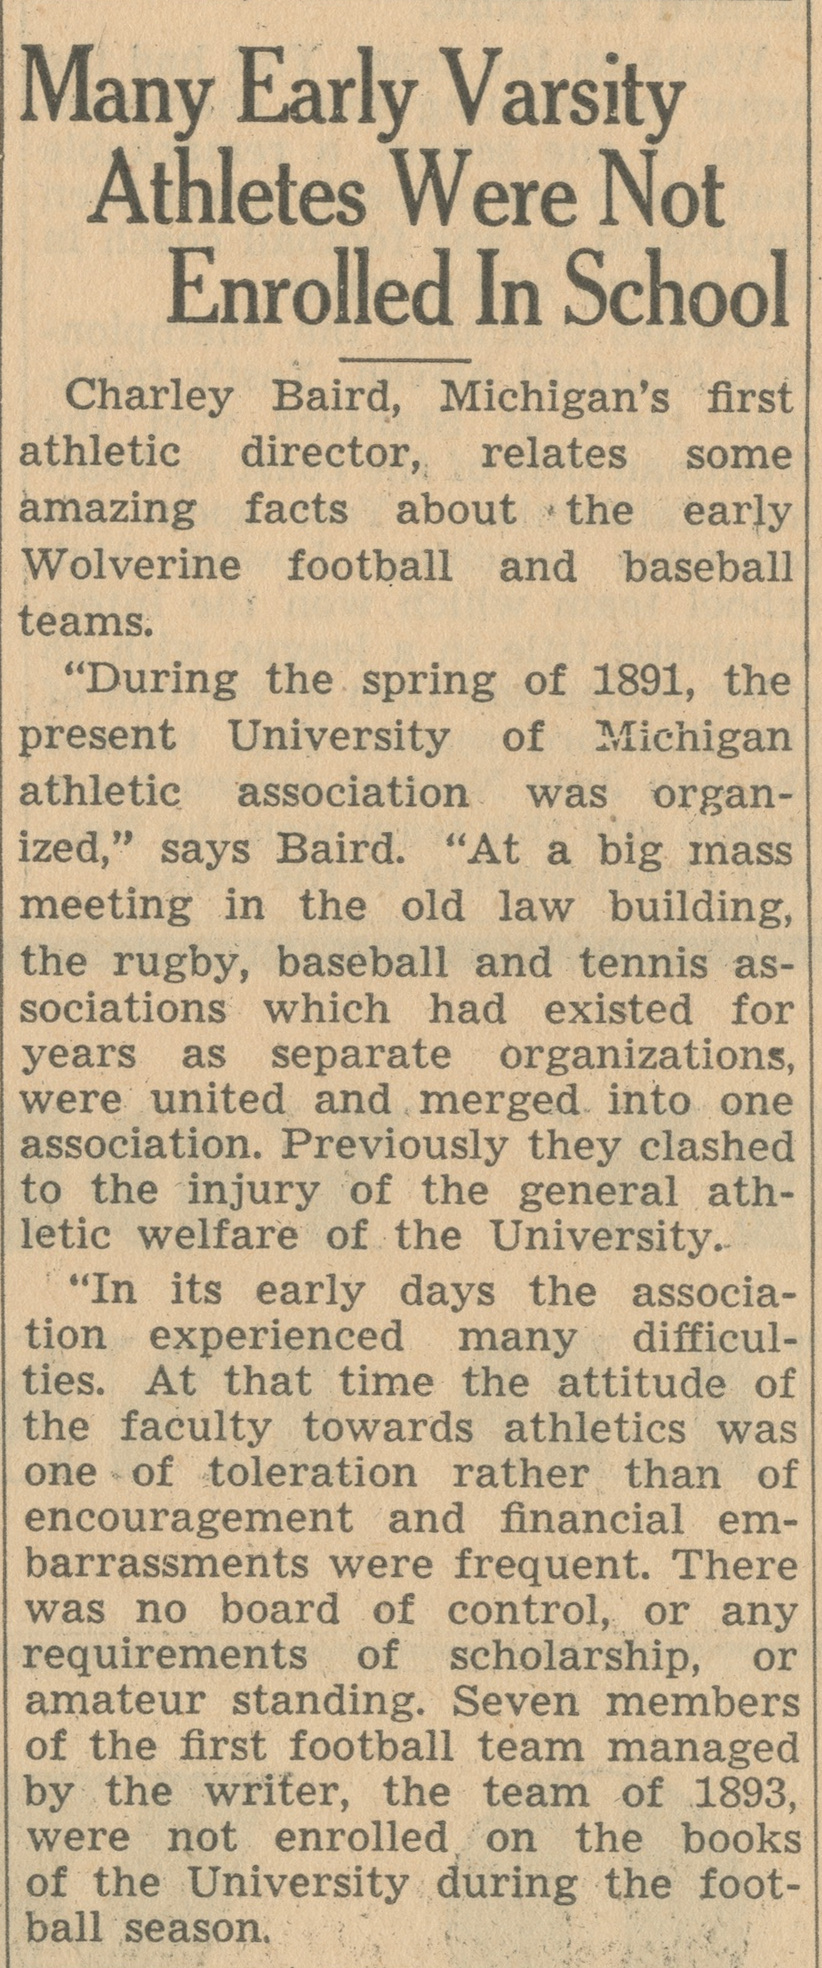 Many Early Varsity Athletes Were Not Enrolled In School image